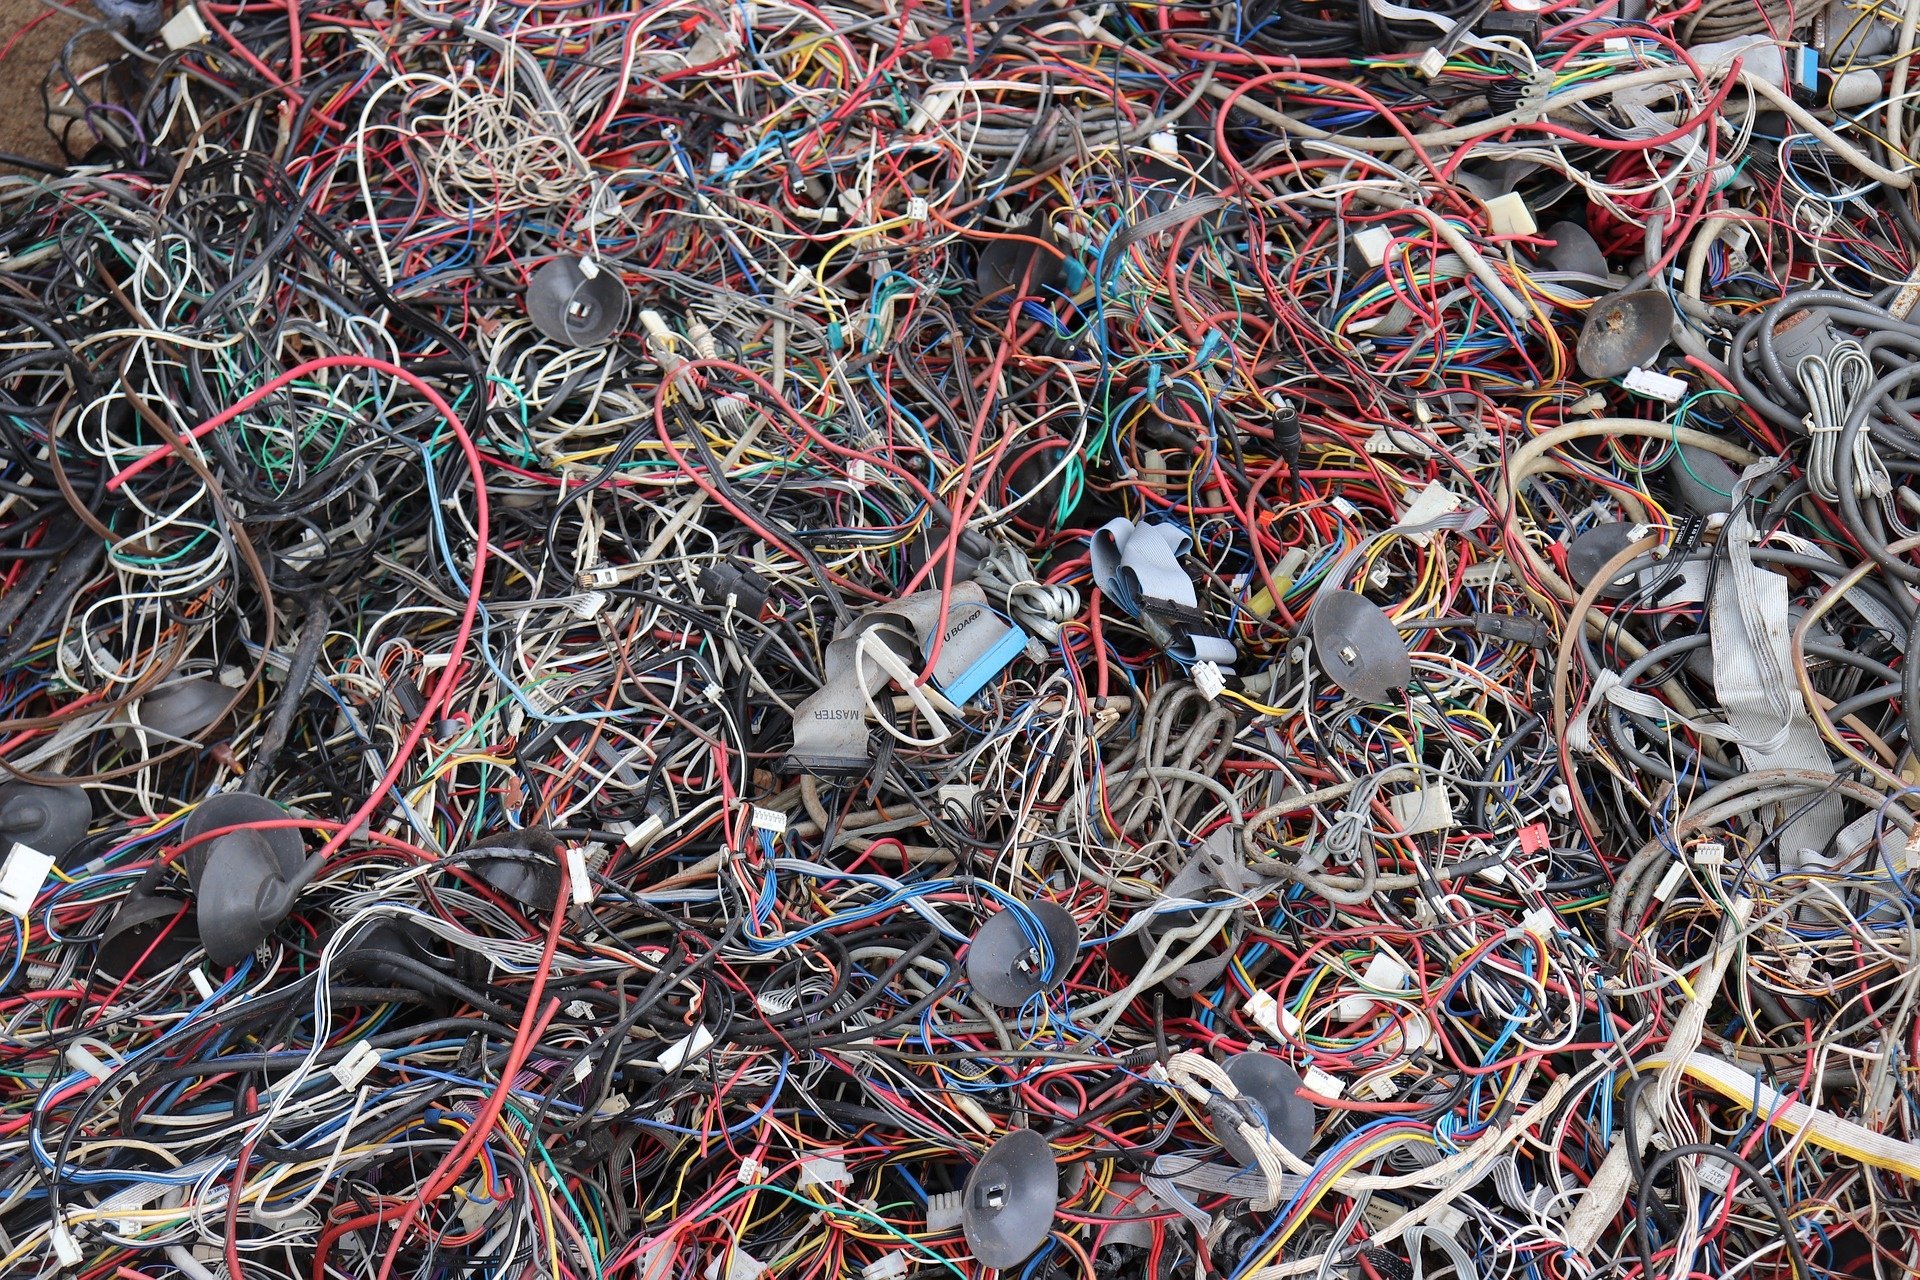 wires-3702104_1920